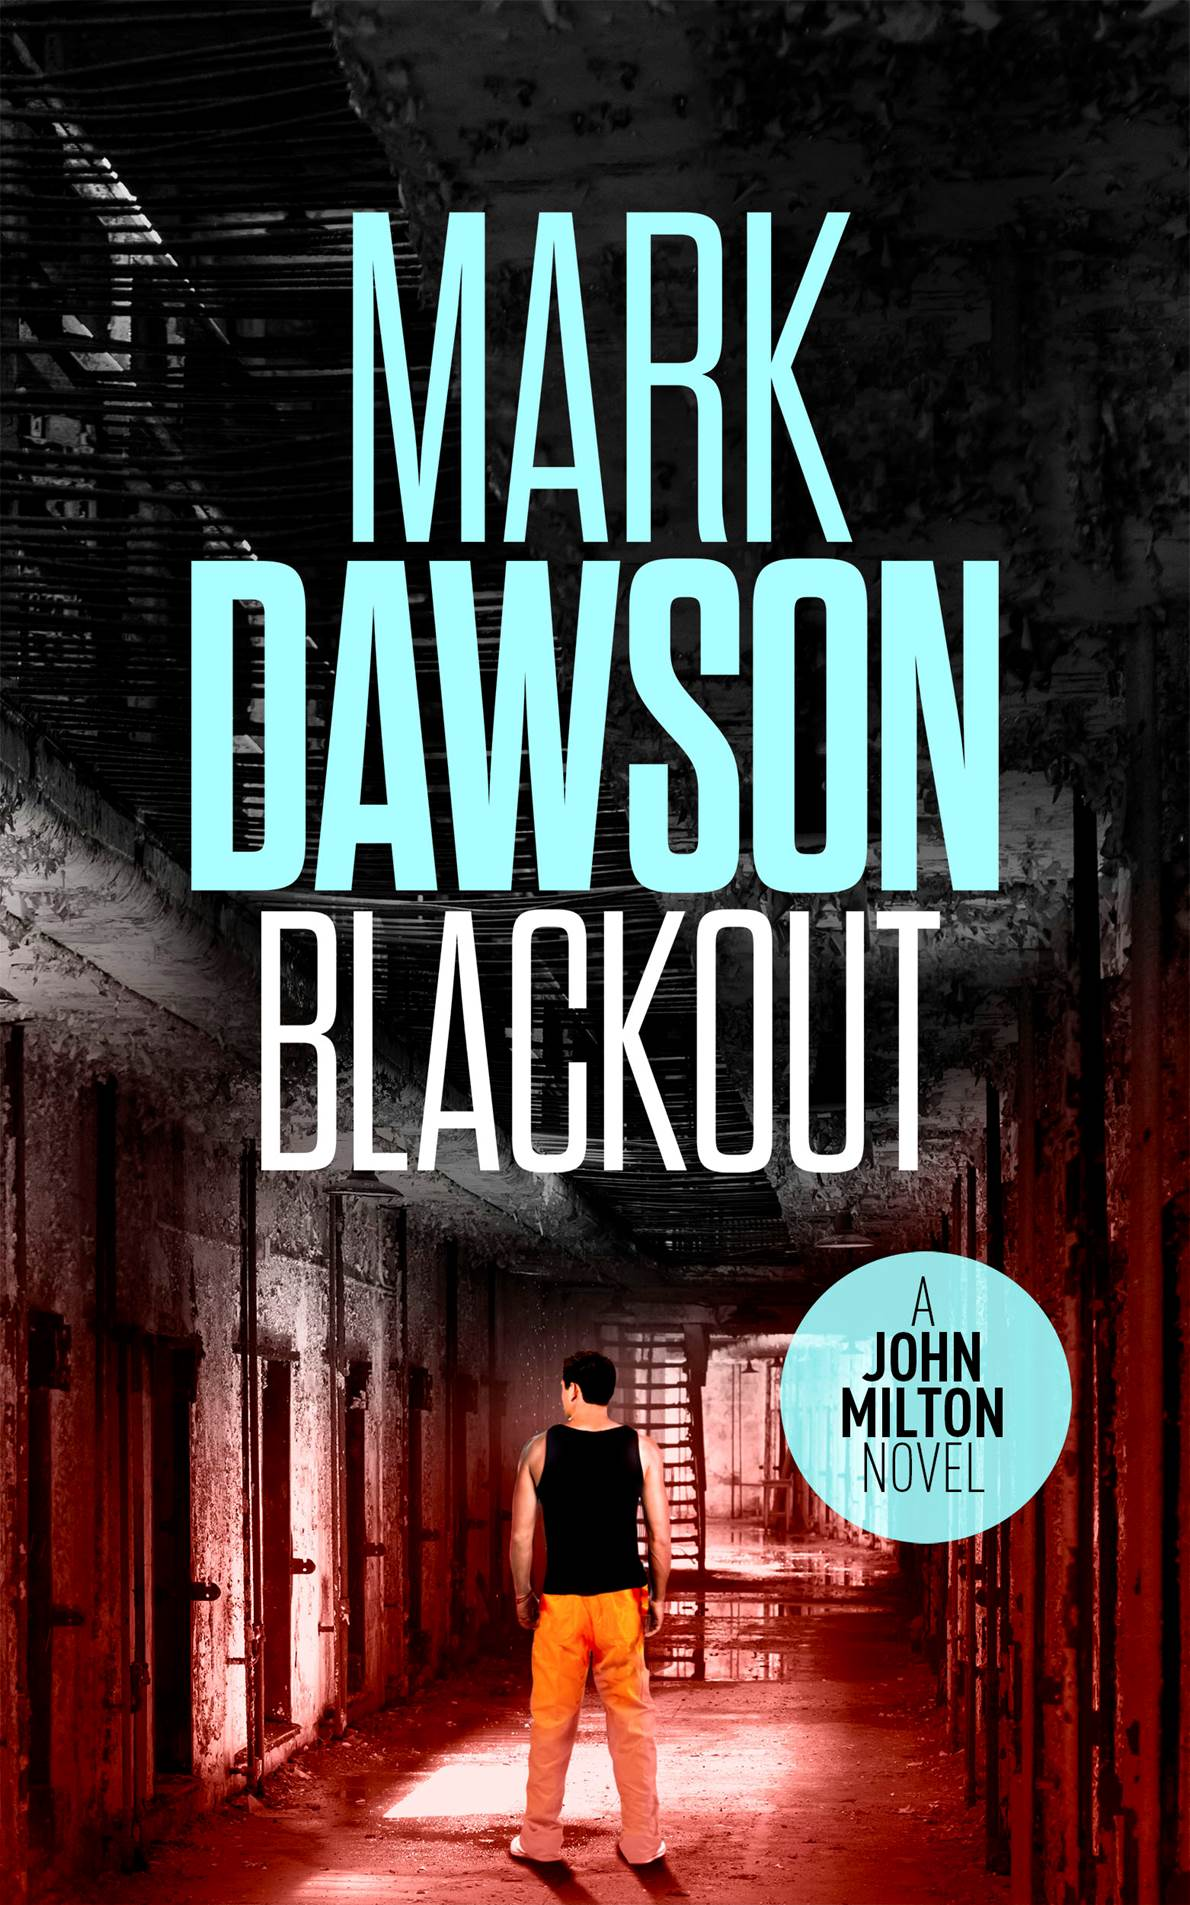 Blackout by Mark Dawson is soft-launched today, ahead of its e-publication at the end of February.